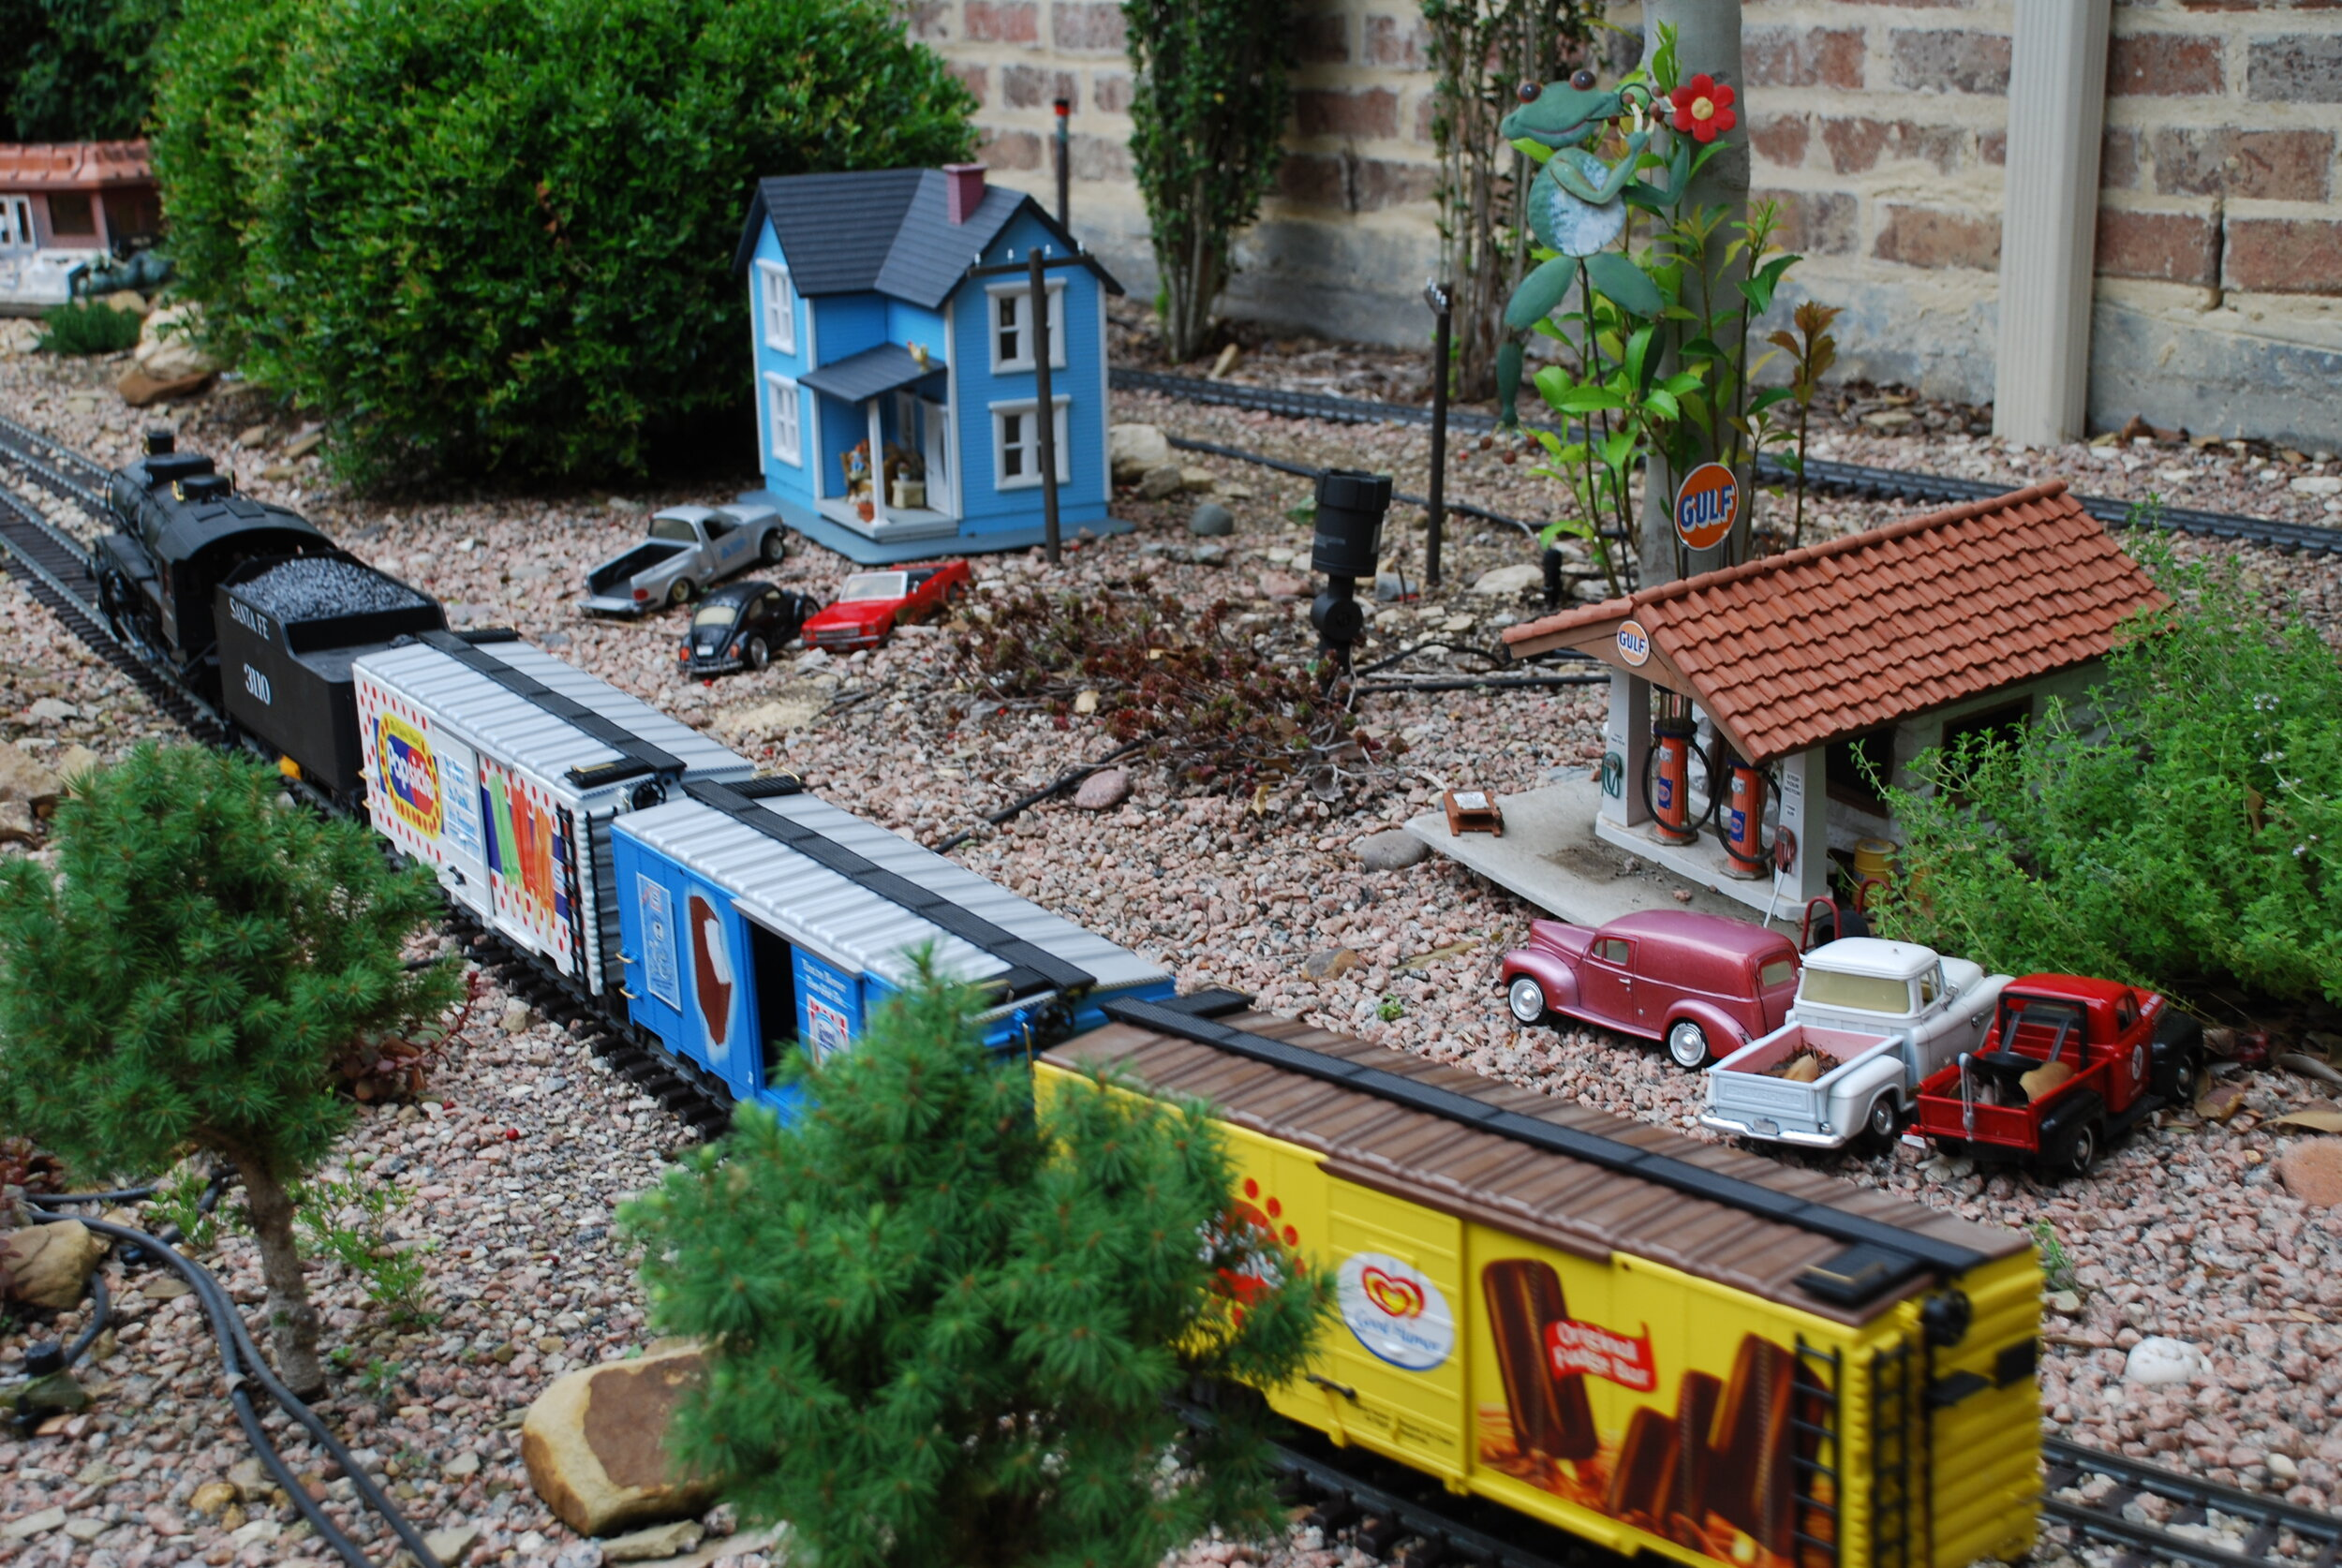 Texas Discovery Gardens Trains - New permanent exhibit!Working model trains debuted at Texas Discovery Gardens decades ago, then for many years circled the Boots of Big Tex, and most recently, could be seen in the Conservatory on the Midway. Now, they're back home!